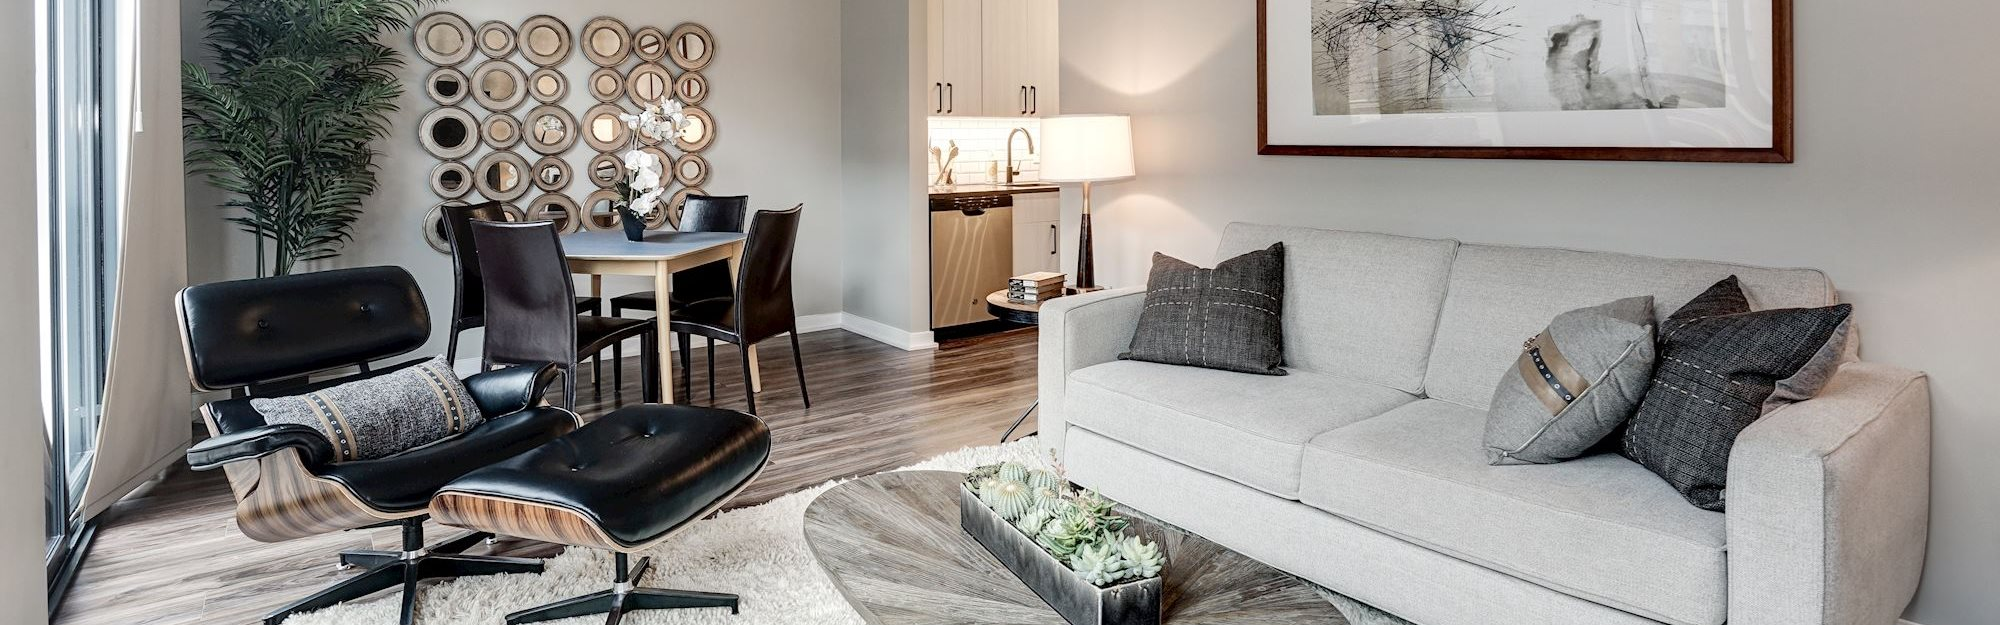 Coda on H Apartments Model Living and Dining Room